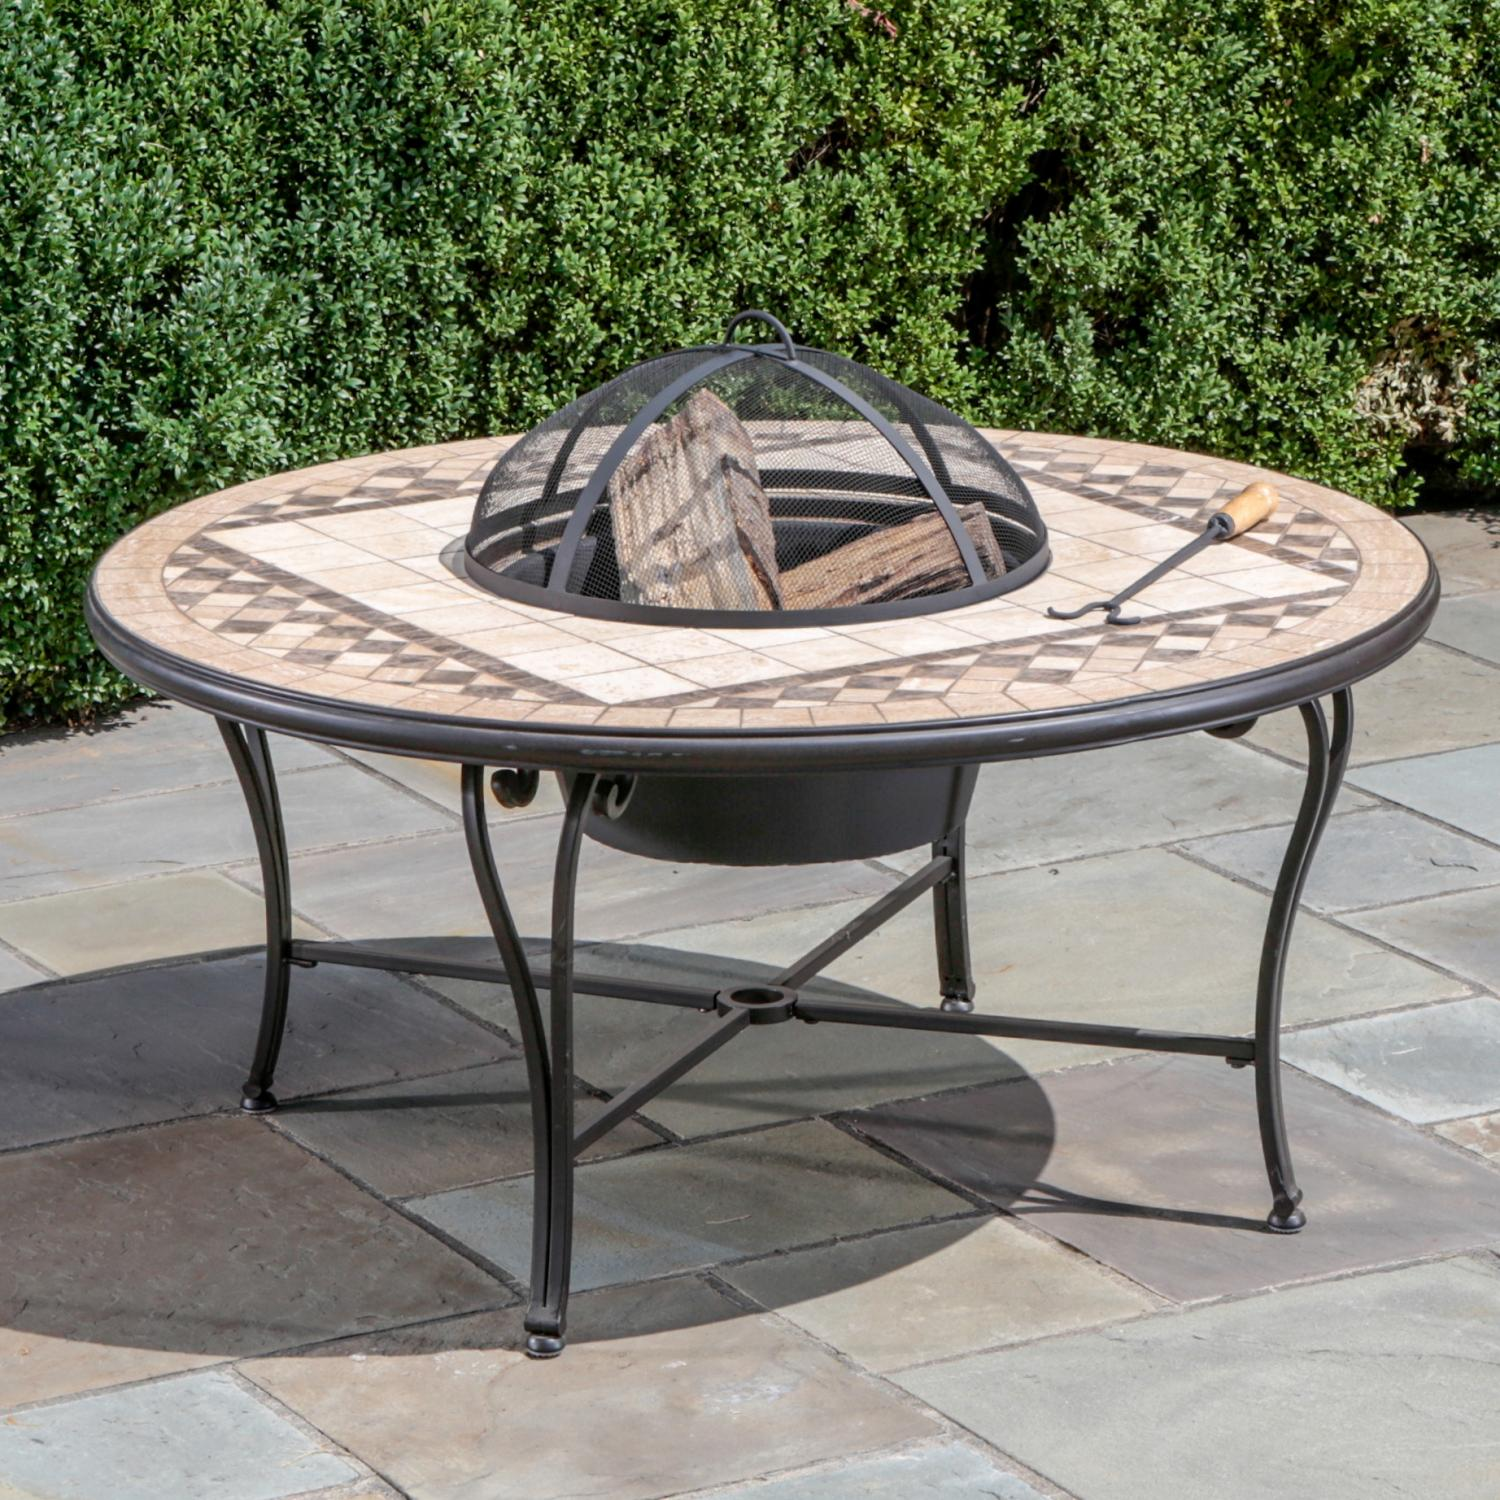 Alfresco Home Basilica Mosaic Fire Pit & Beverage Cooler Table at Sears.com